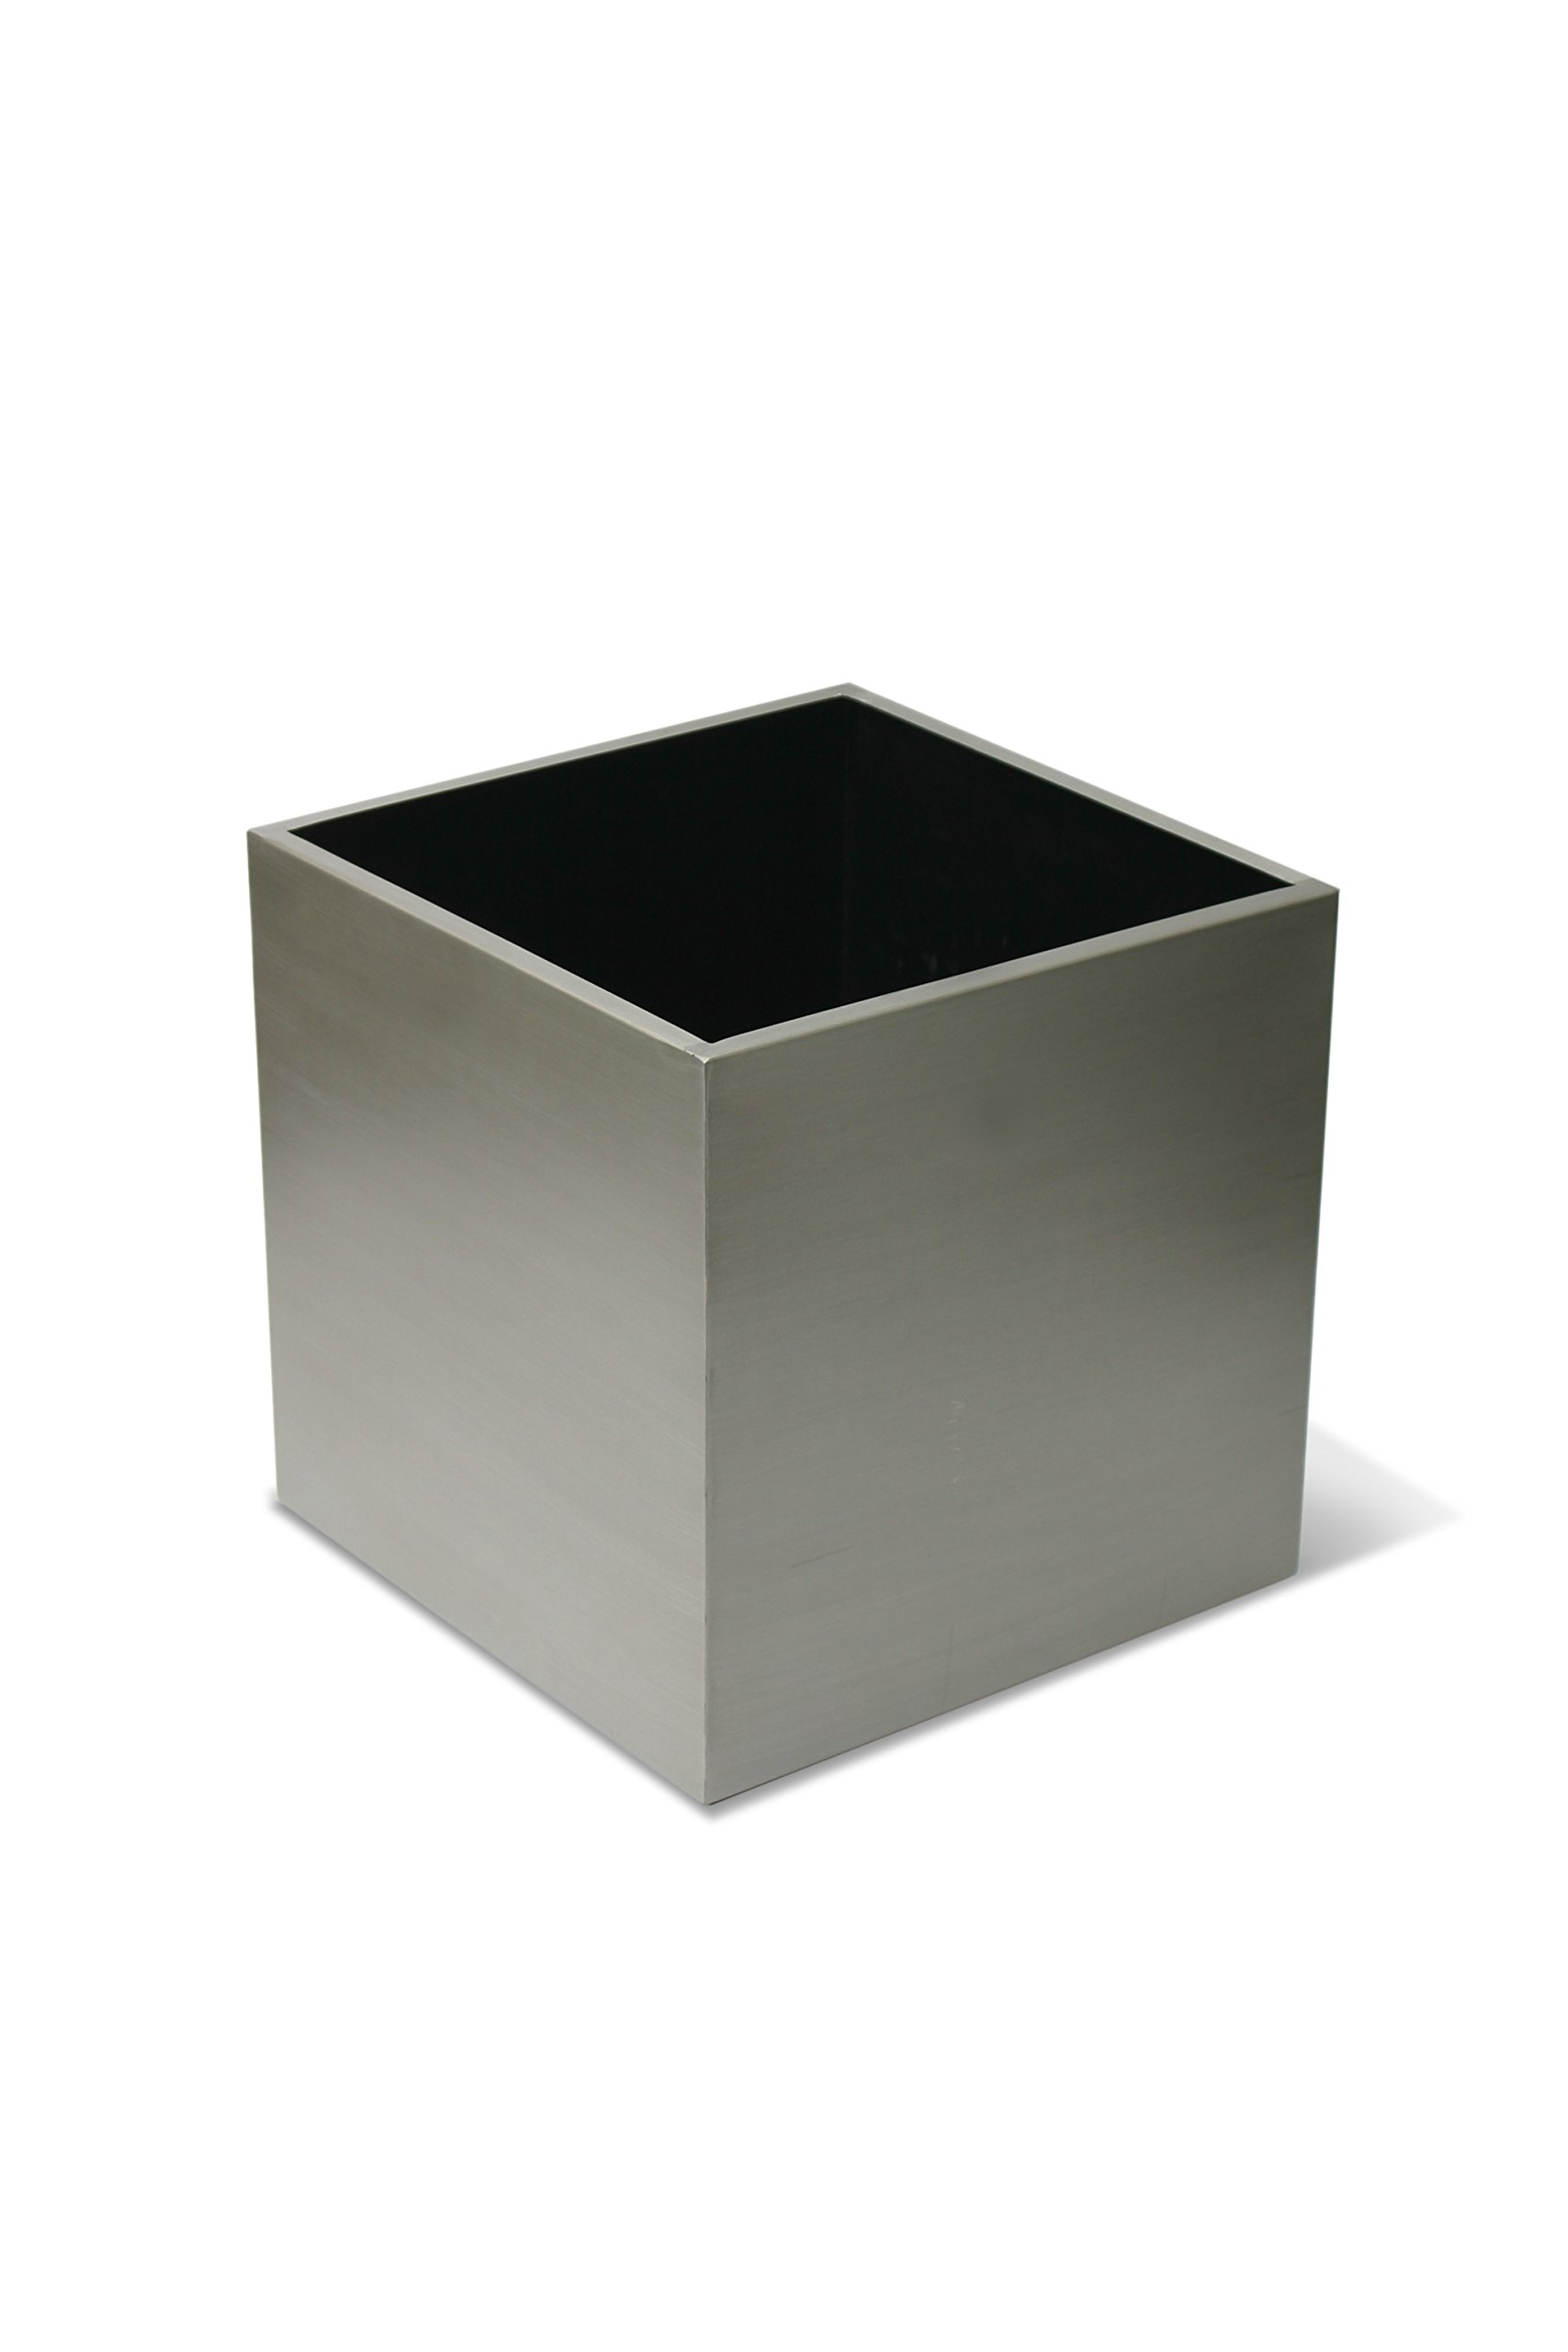 Algreen Stainless Steel Cube, Brushed Finish, 16'' X 16'' X 16'' by Algreen